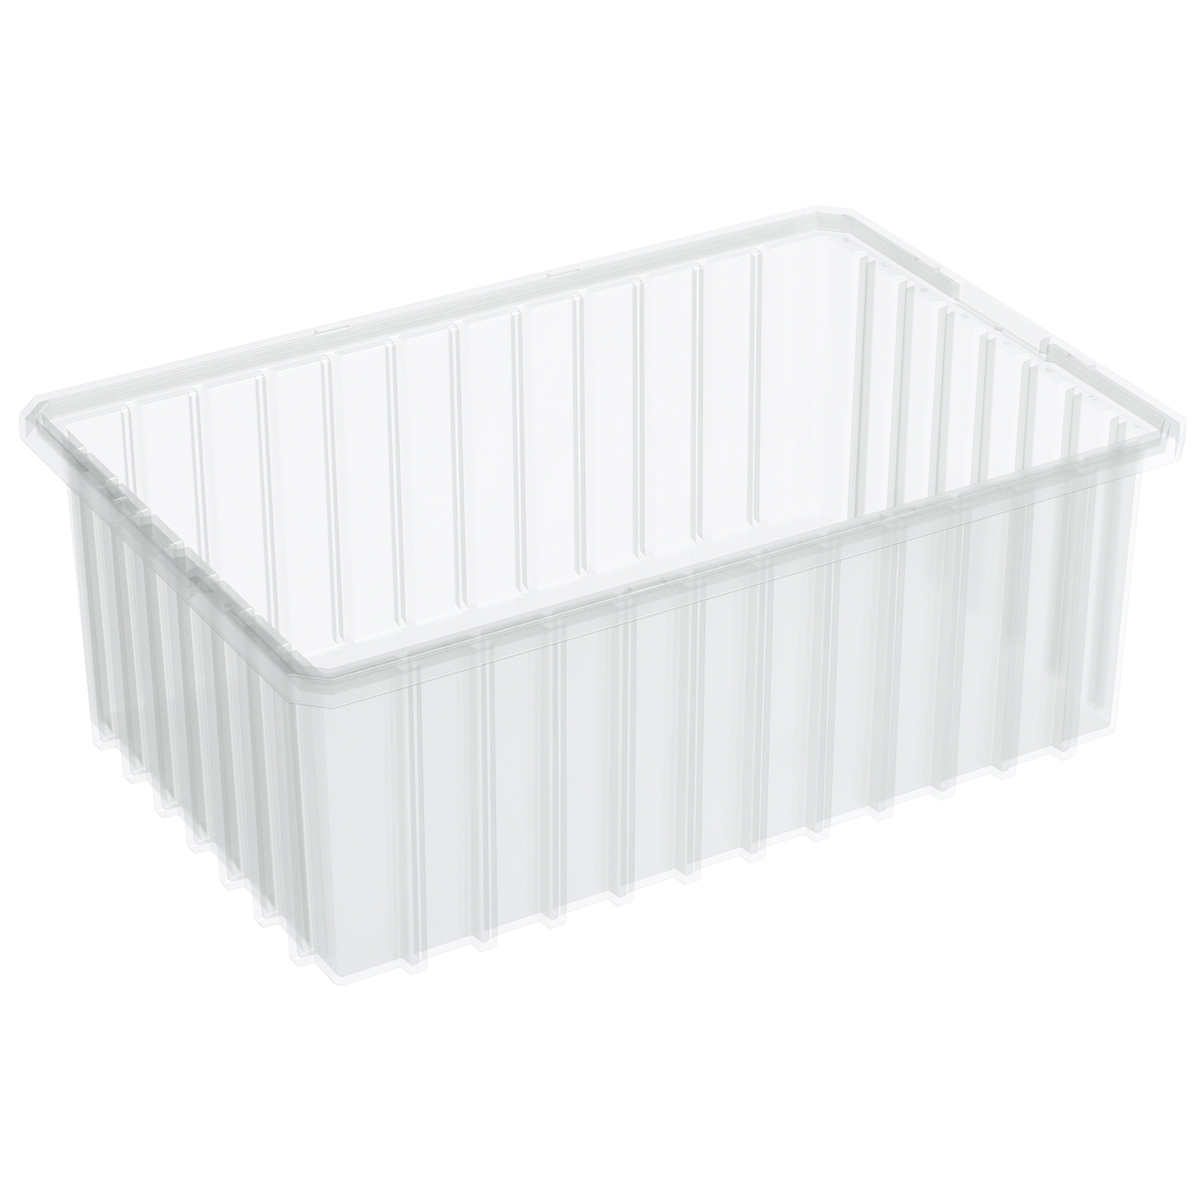 Akro-Grid Dividable Box 16-1/2 x 10-7/8 x 6, Clear (33166SCLAR).  This item sold in carton quantities of 8.